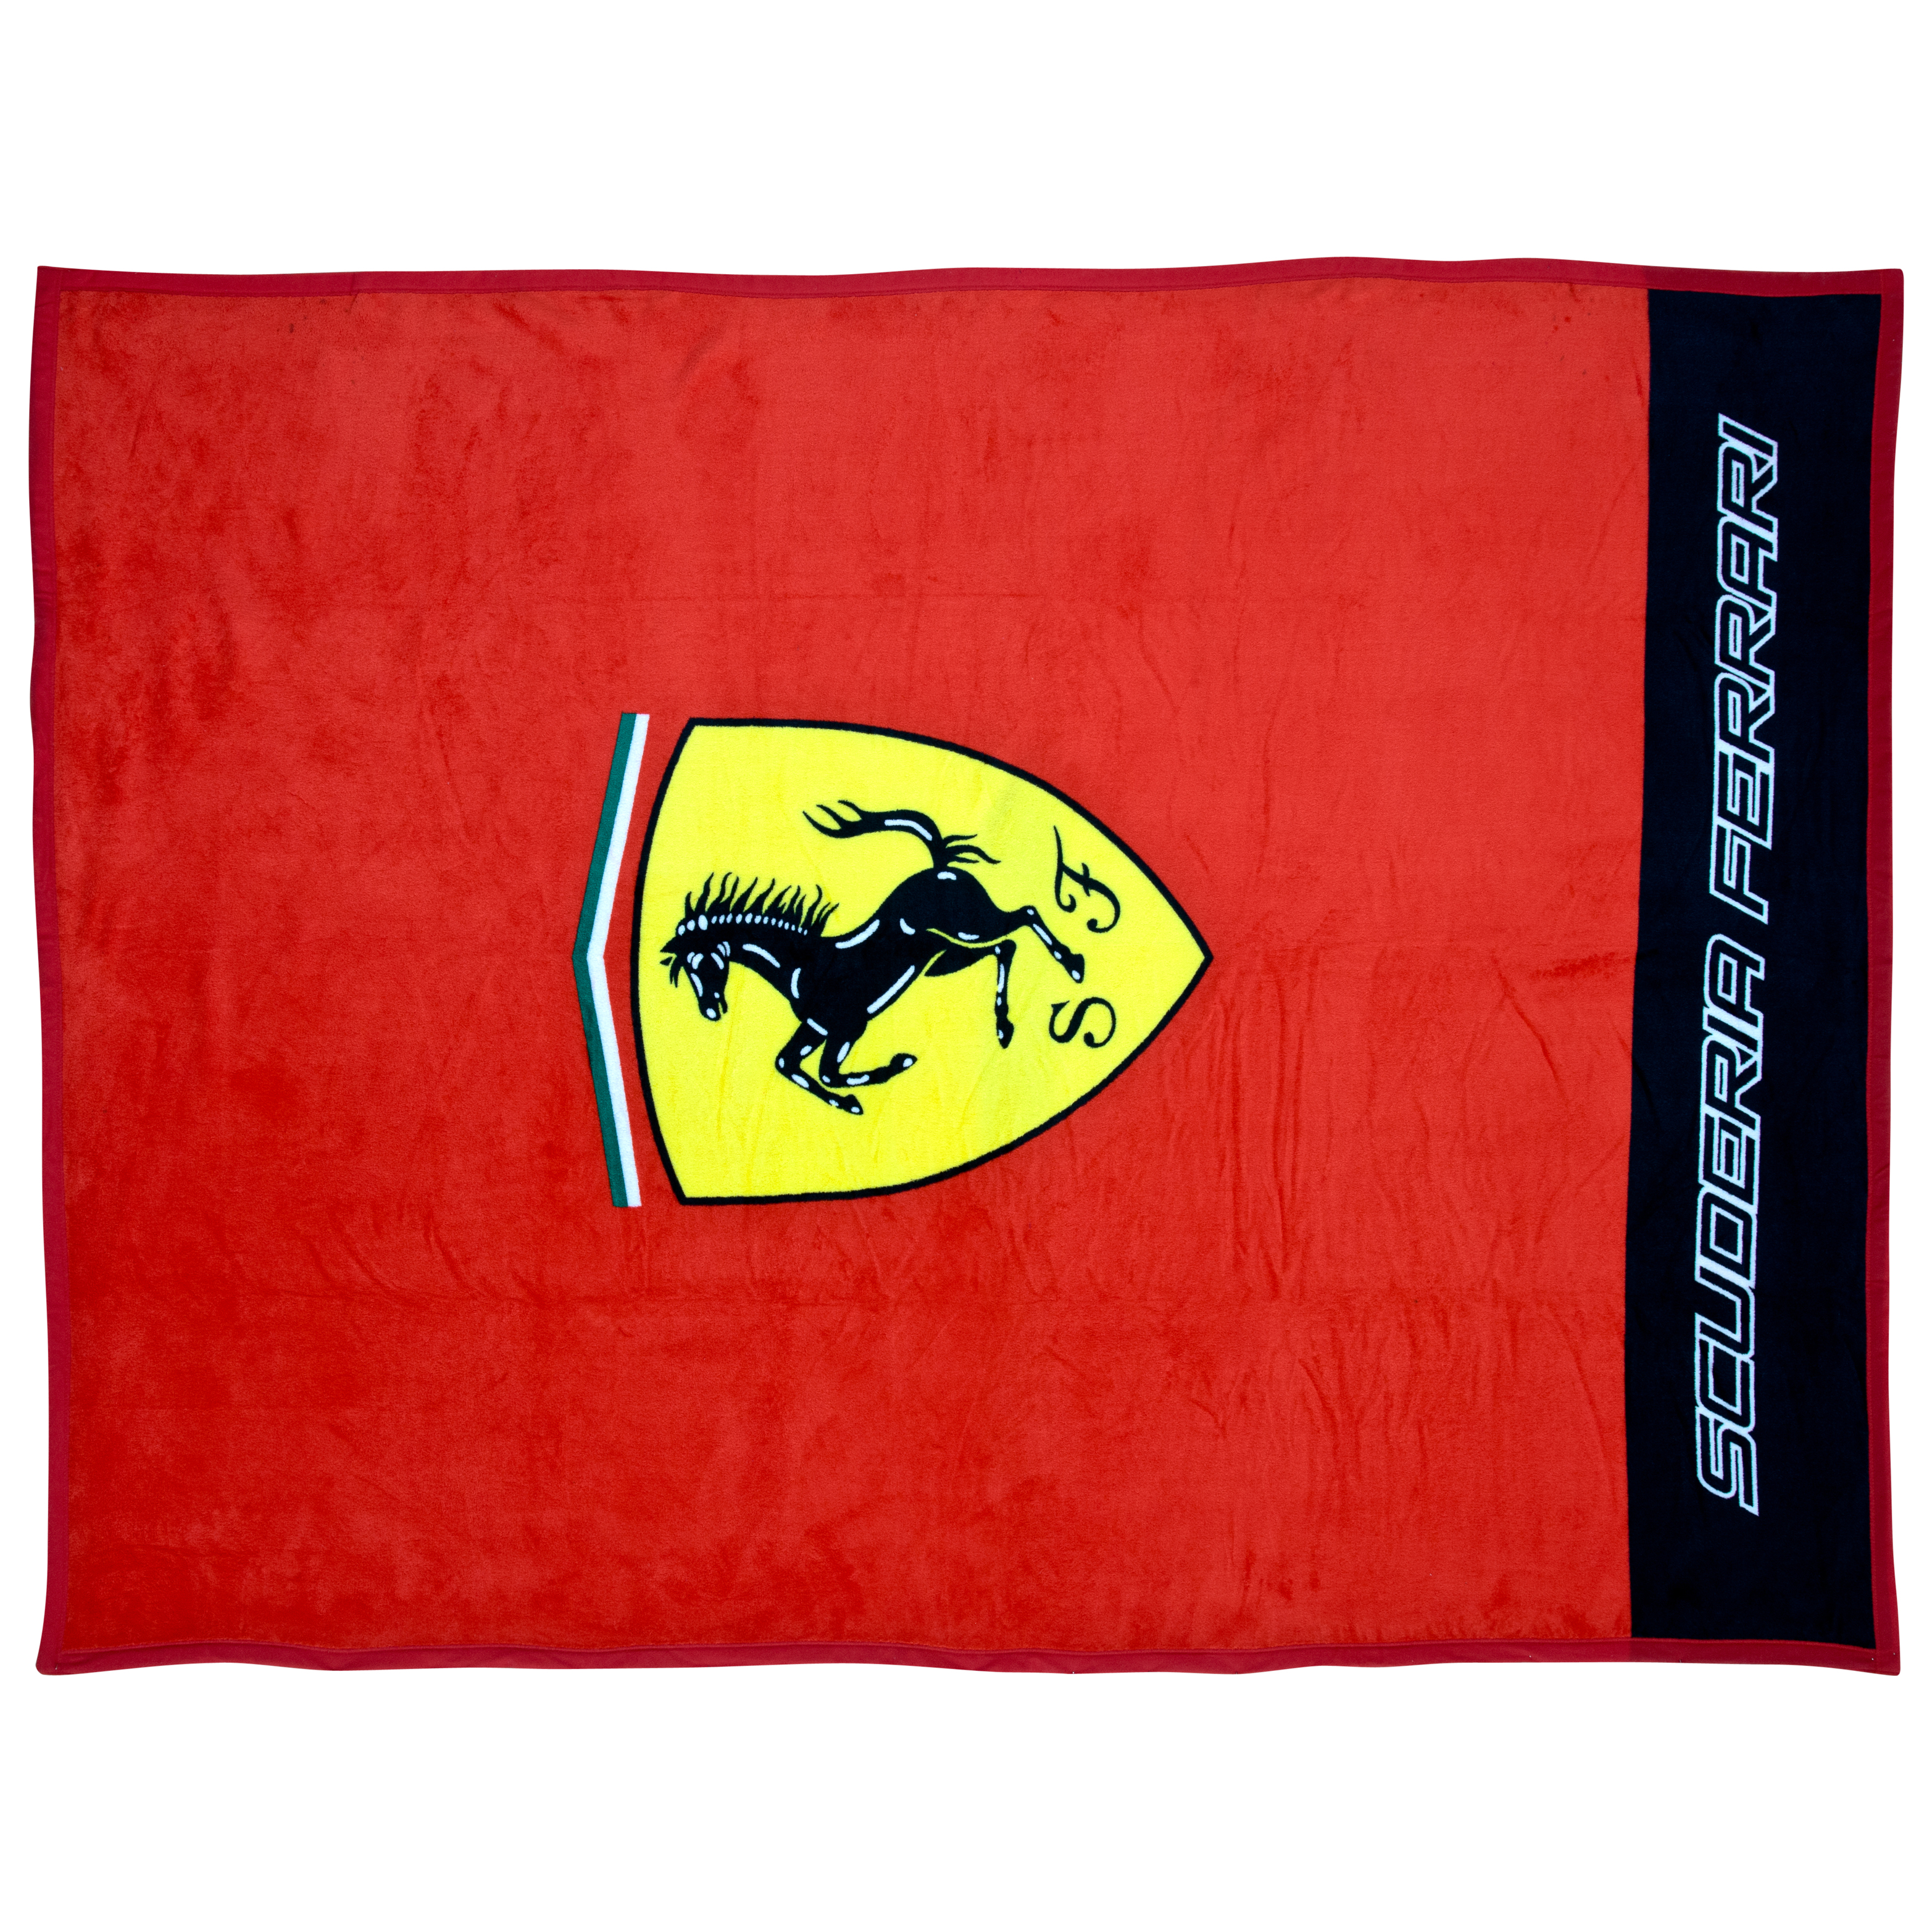 Scuderia Ferrari Classic Logo Microplush Blanket